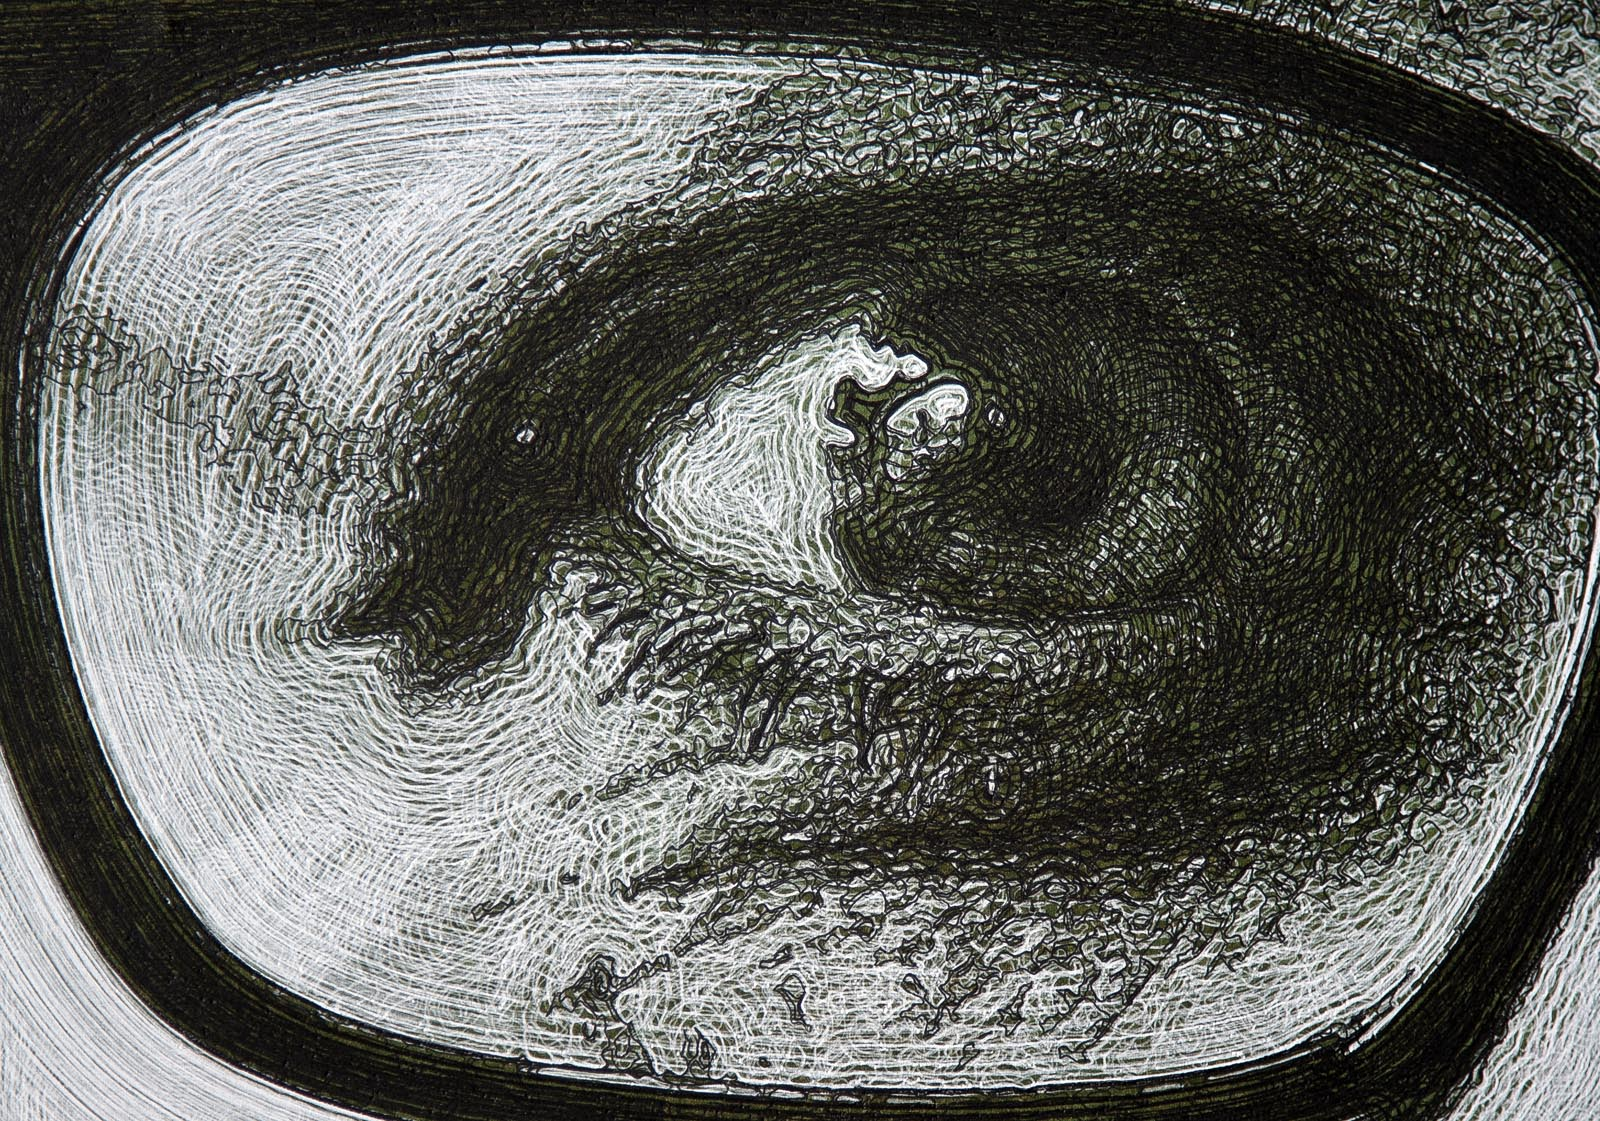 misty pen and ink drawing 82 x 45 inches